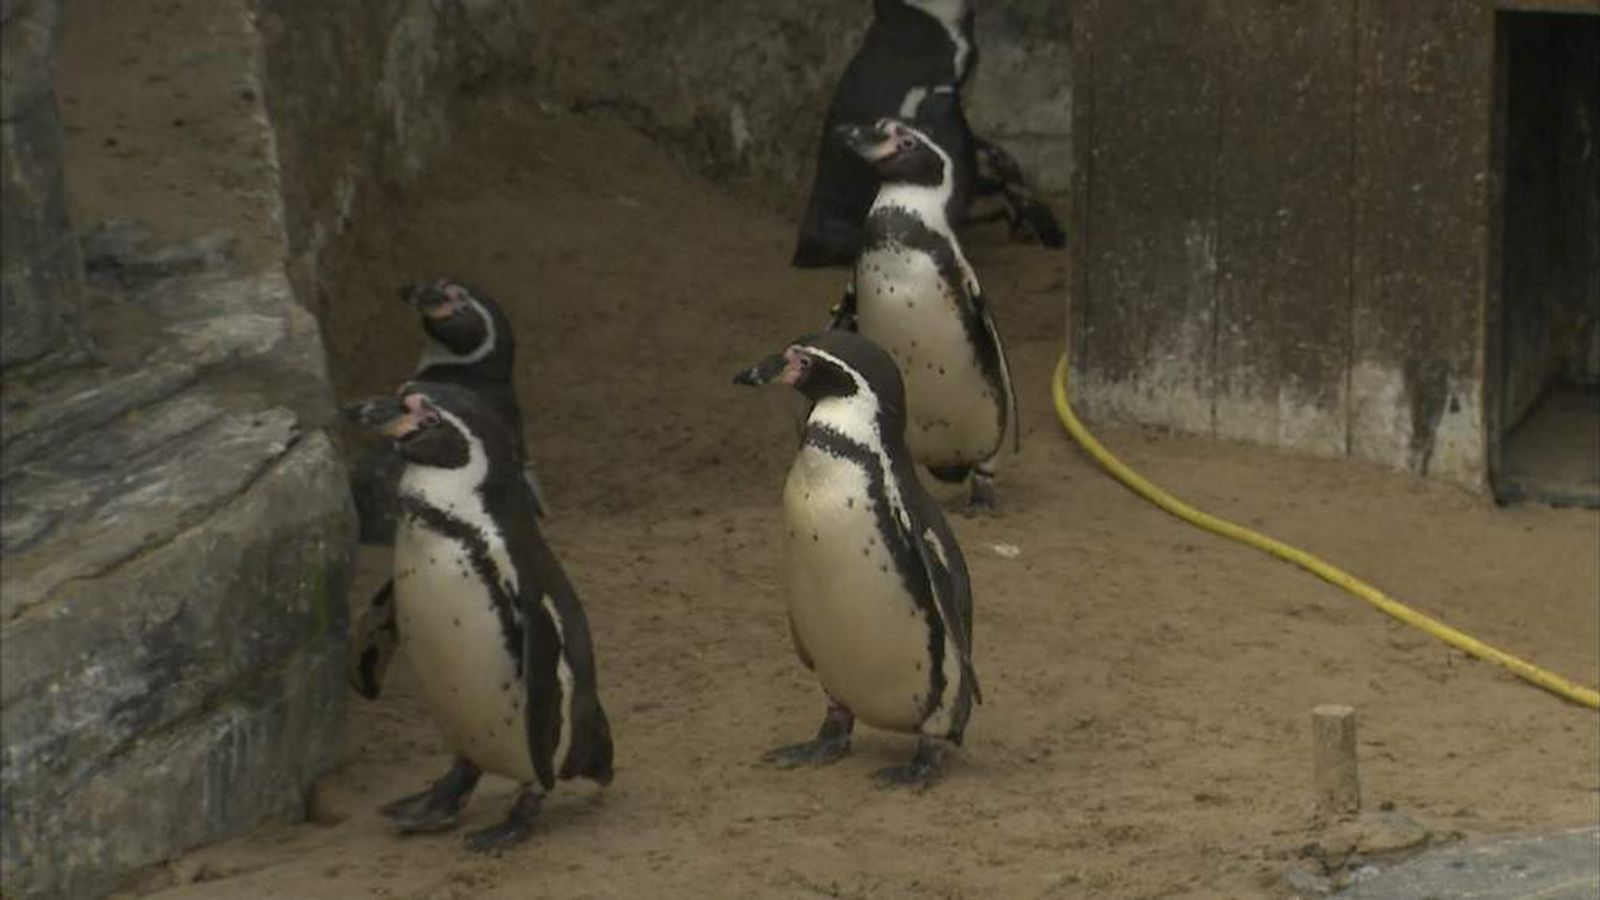 Penguins pool polluted